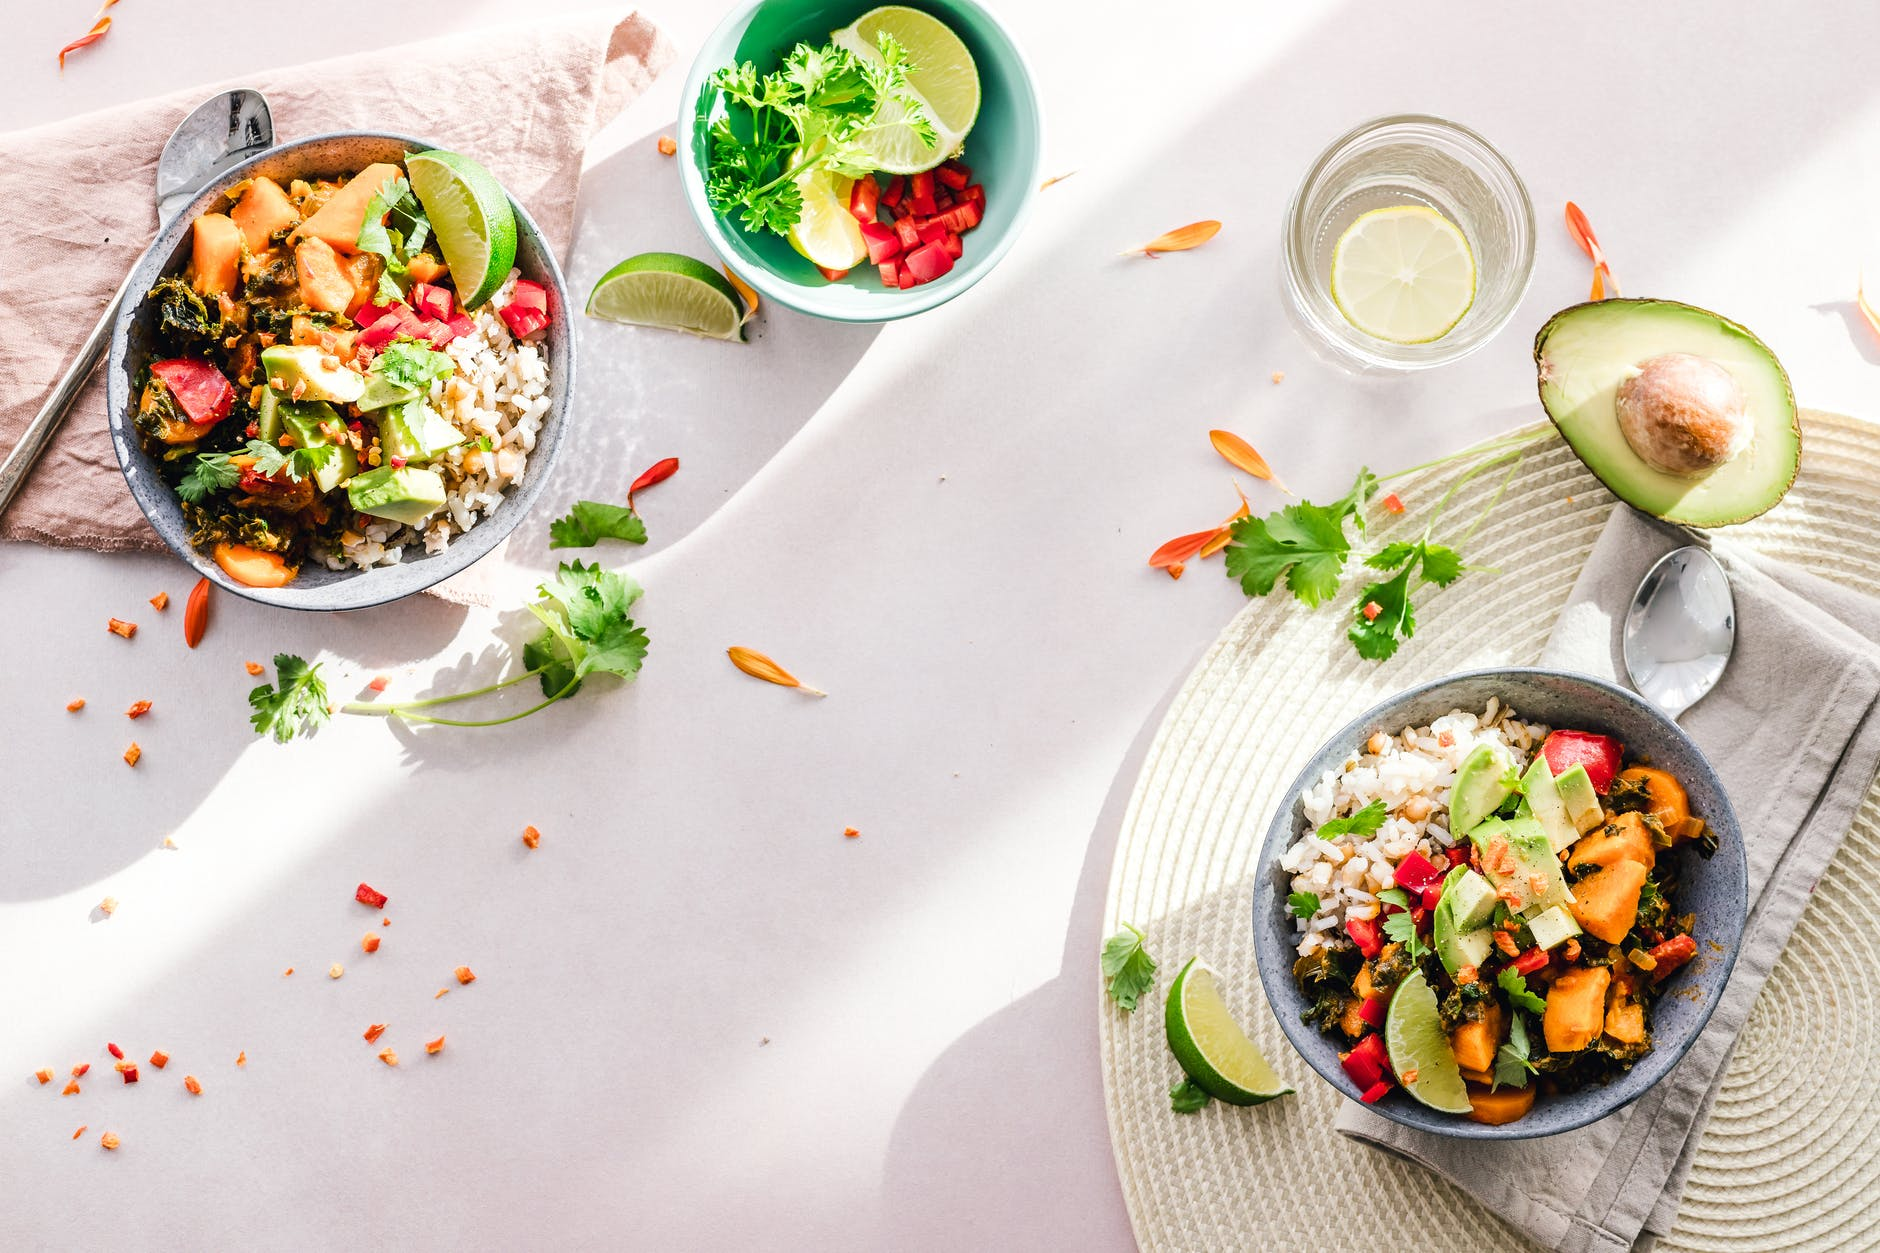 photo of vegetable salad in bowls